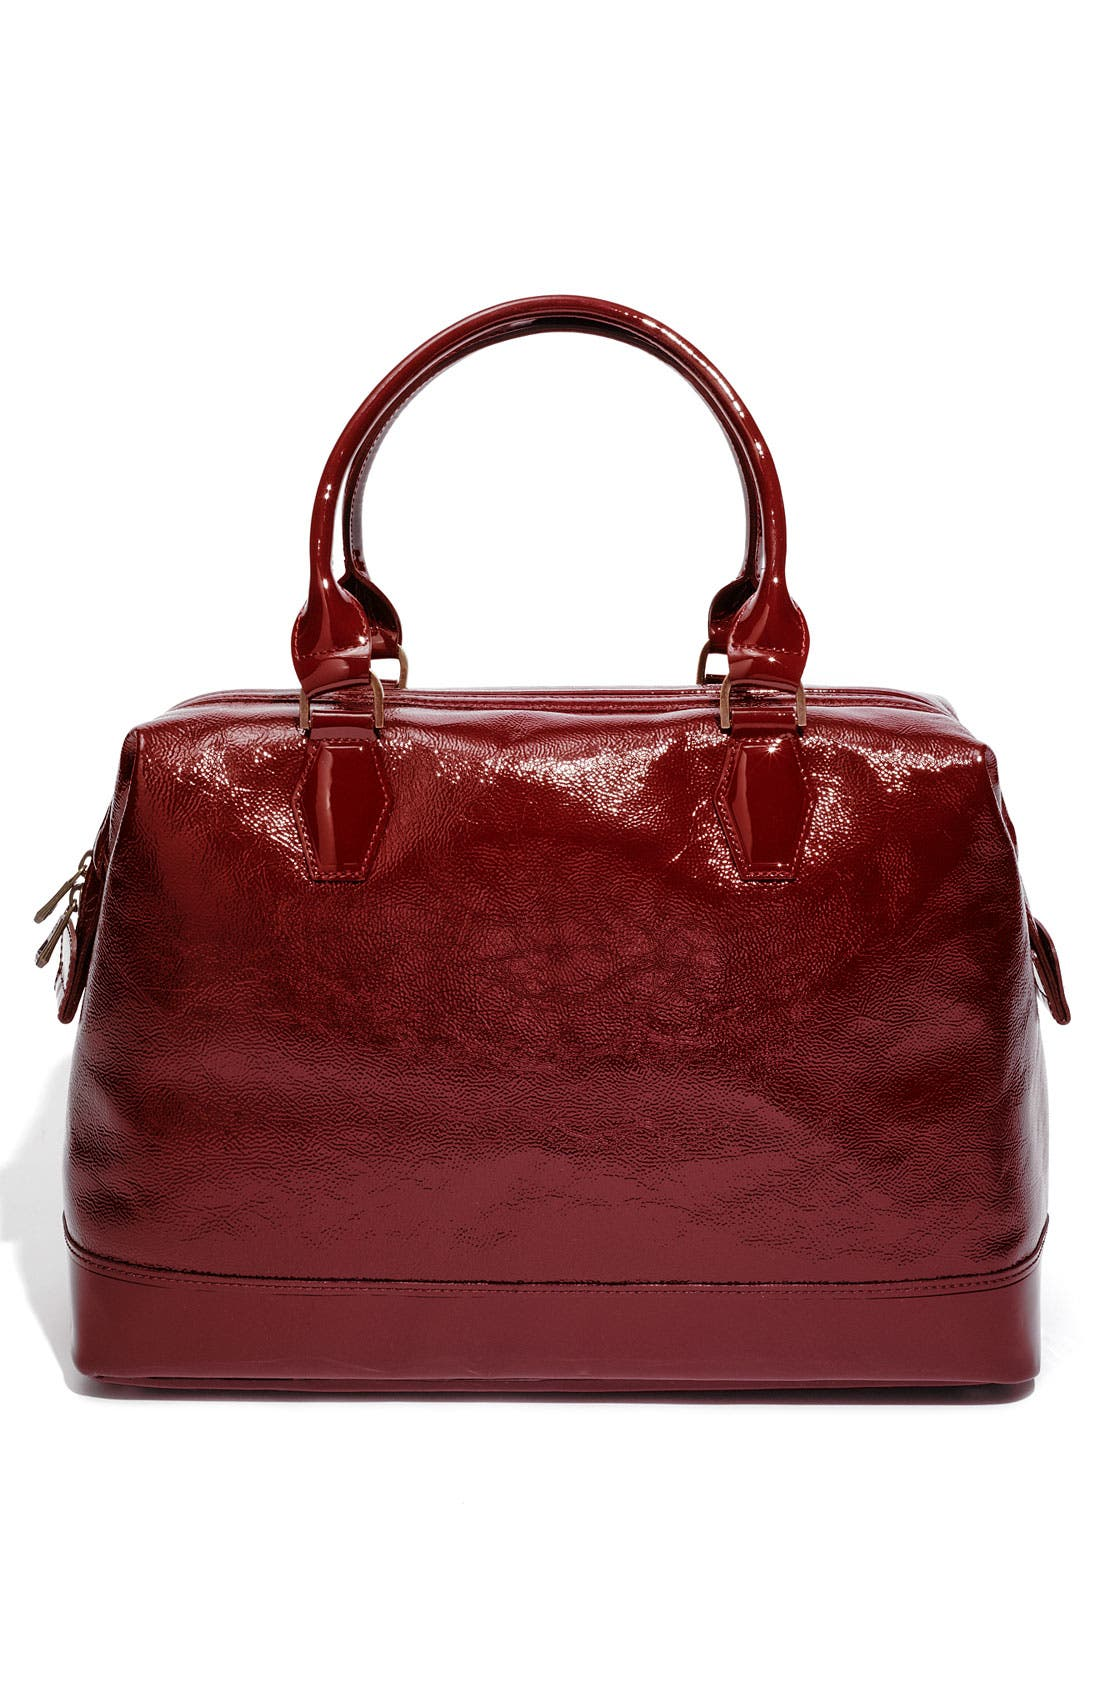 LONGCHAMP,                             'Legende Verni' Patent Calfskin Satchel,                             Alternate thumbnail 3, color,                             601